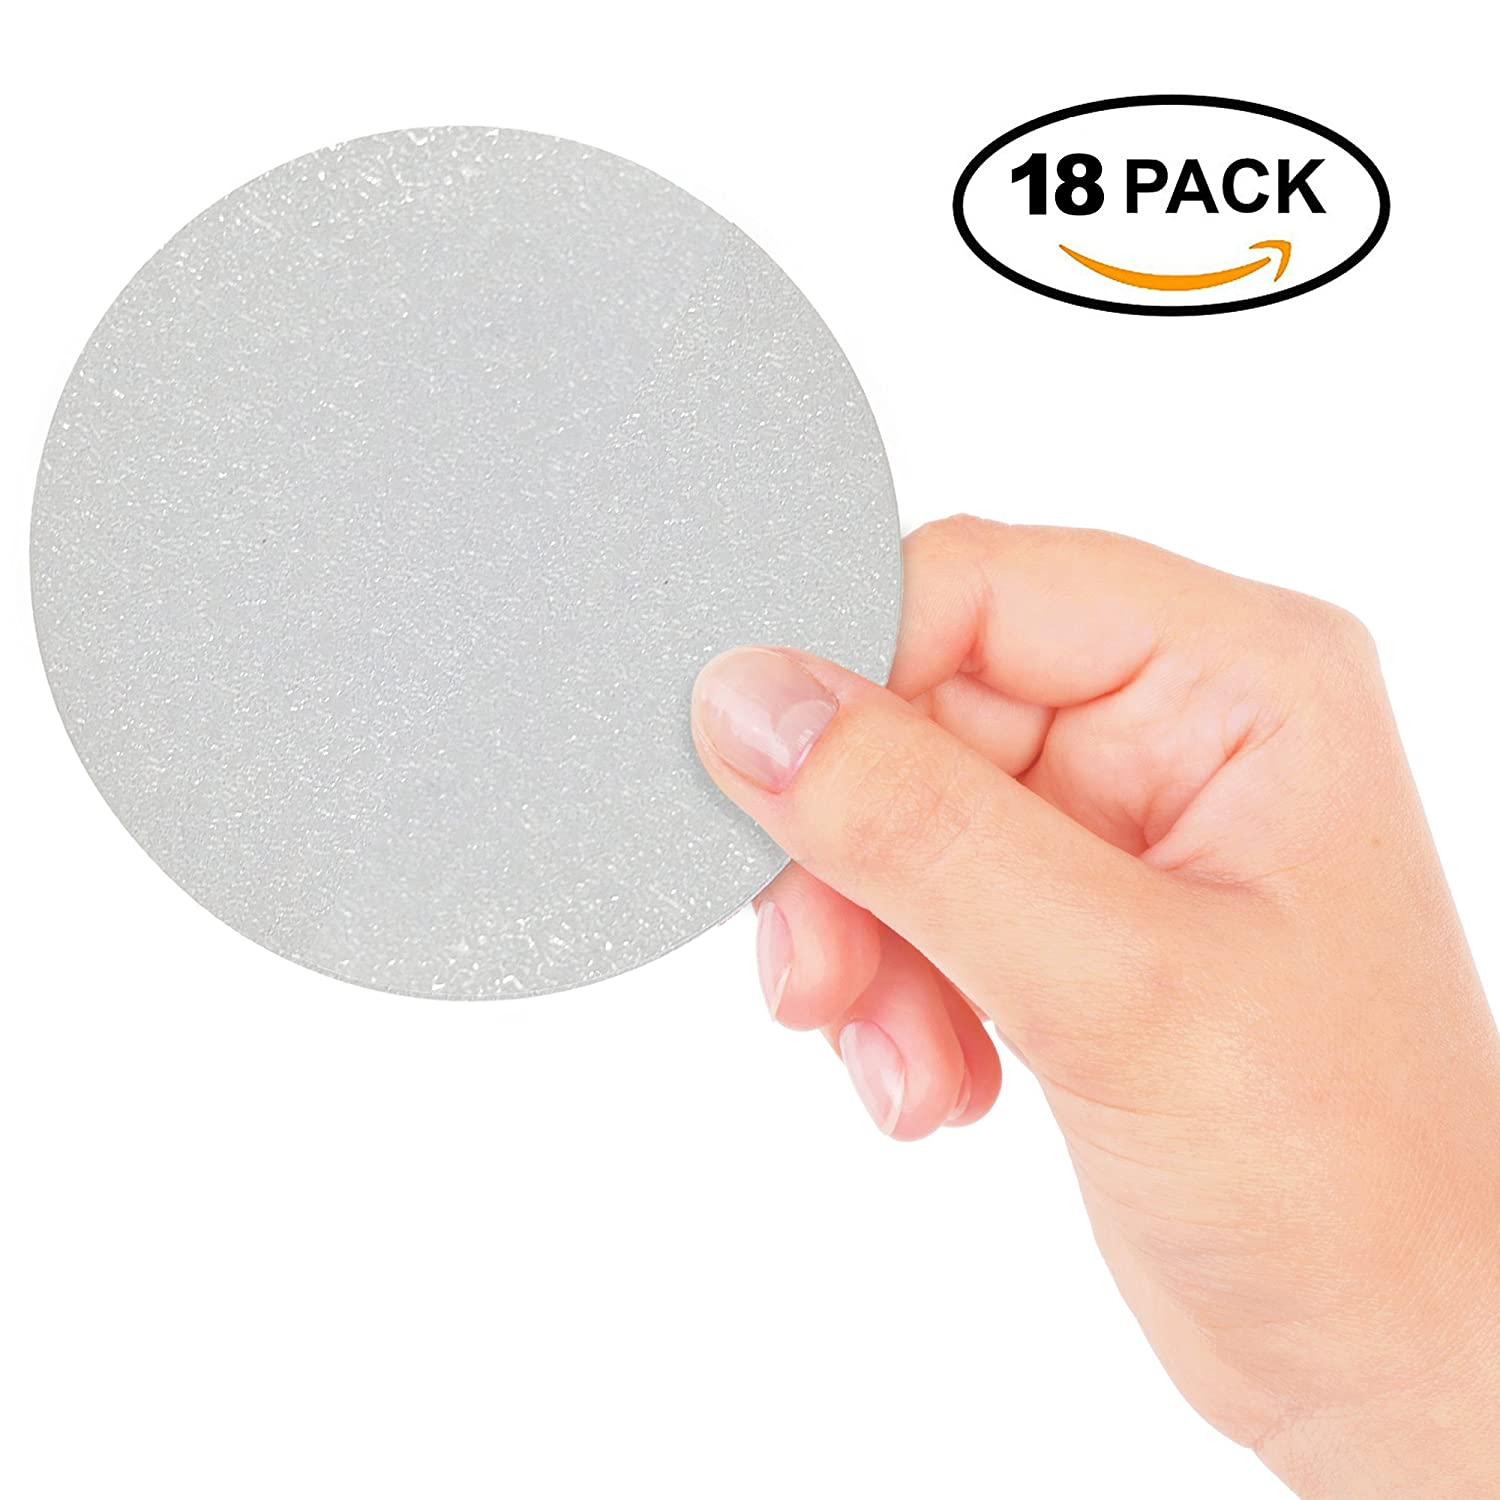 Chuckle 18 Big Baby Protection Transparent Anti Slip Circle Stickers for Bath and Shower Safety for better floor grip & surface resistance, 10 CM Diameter